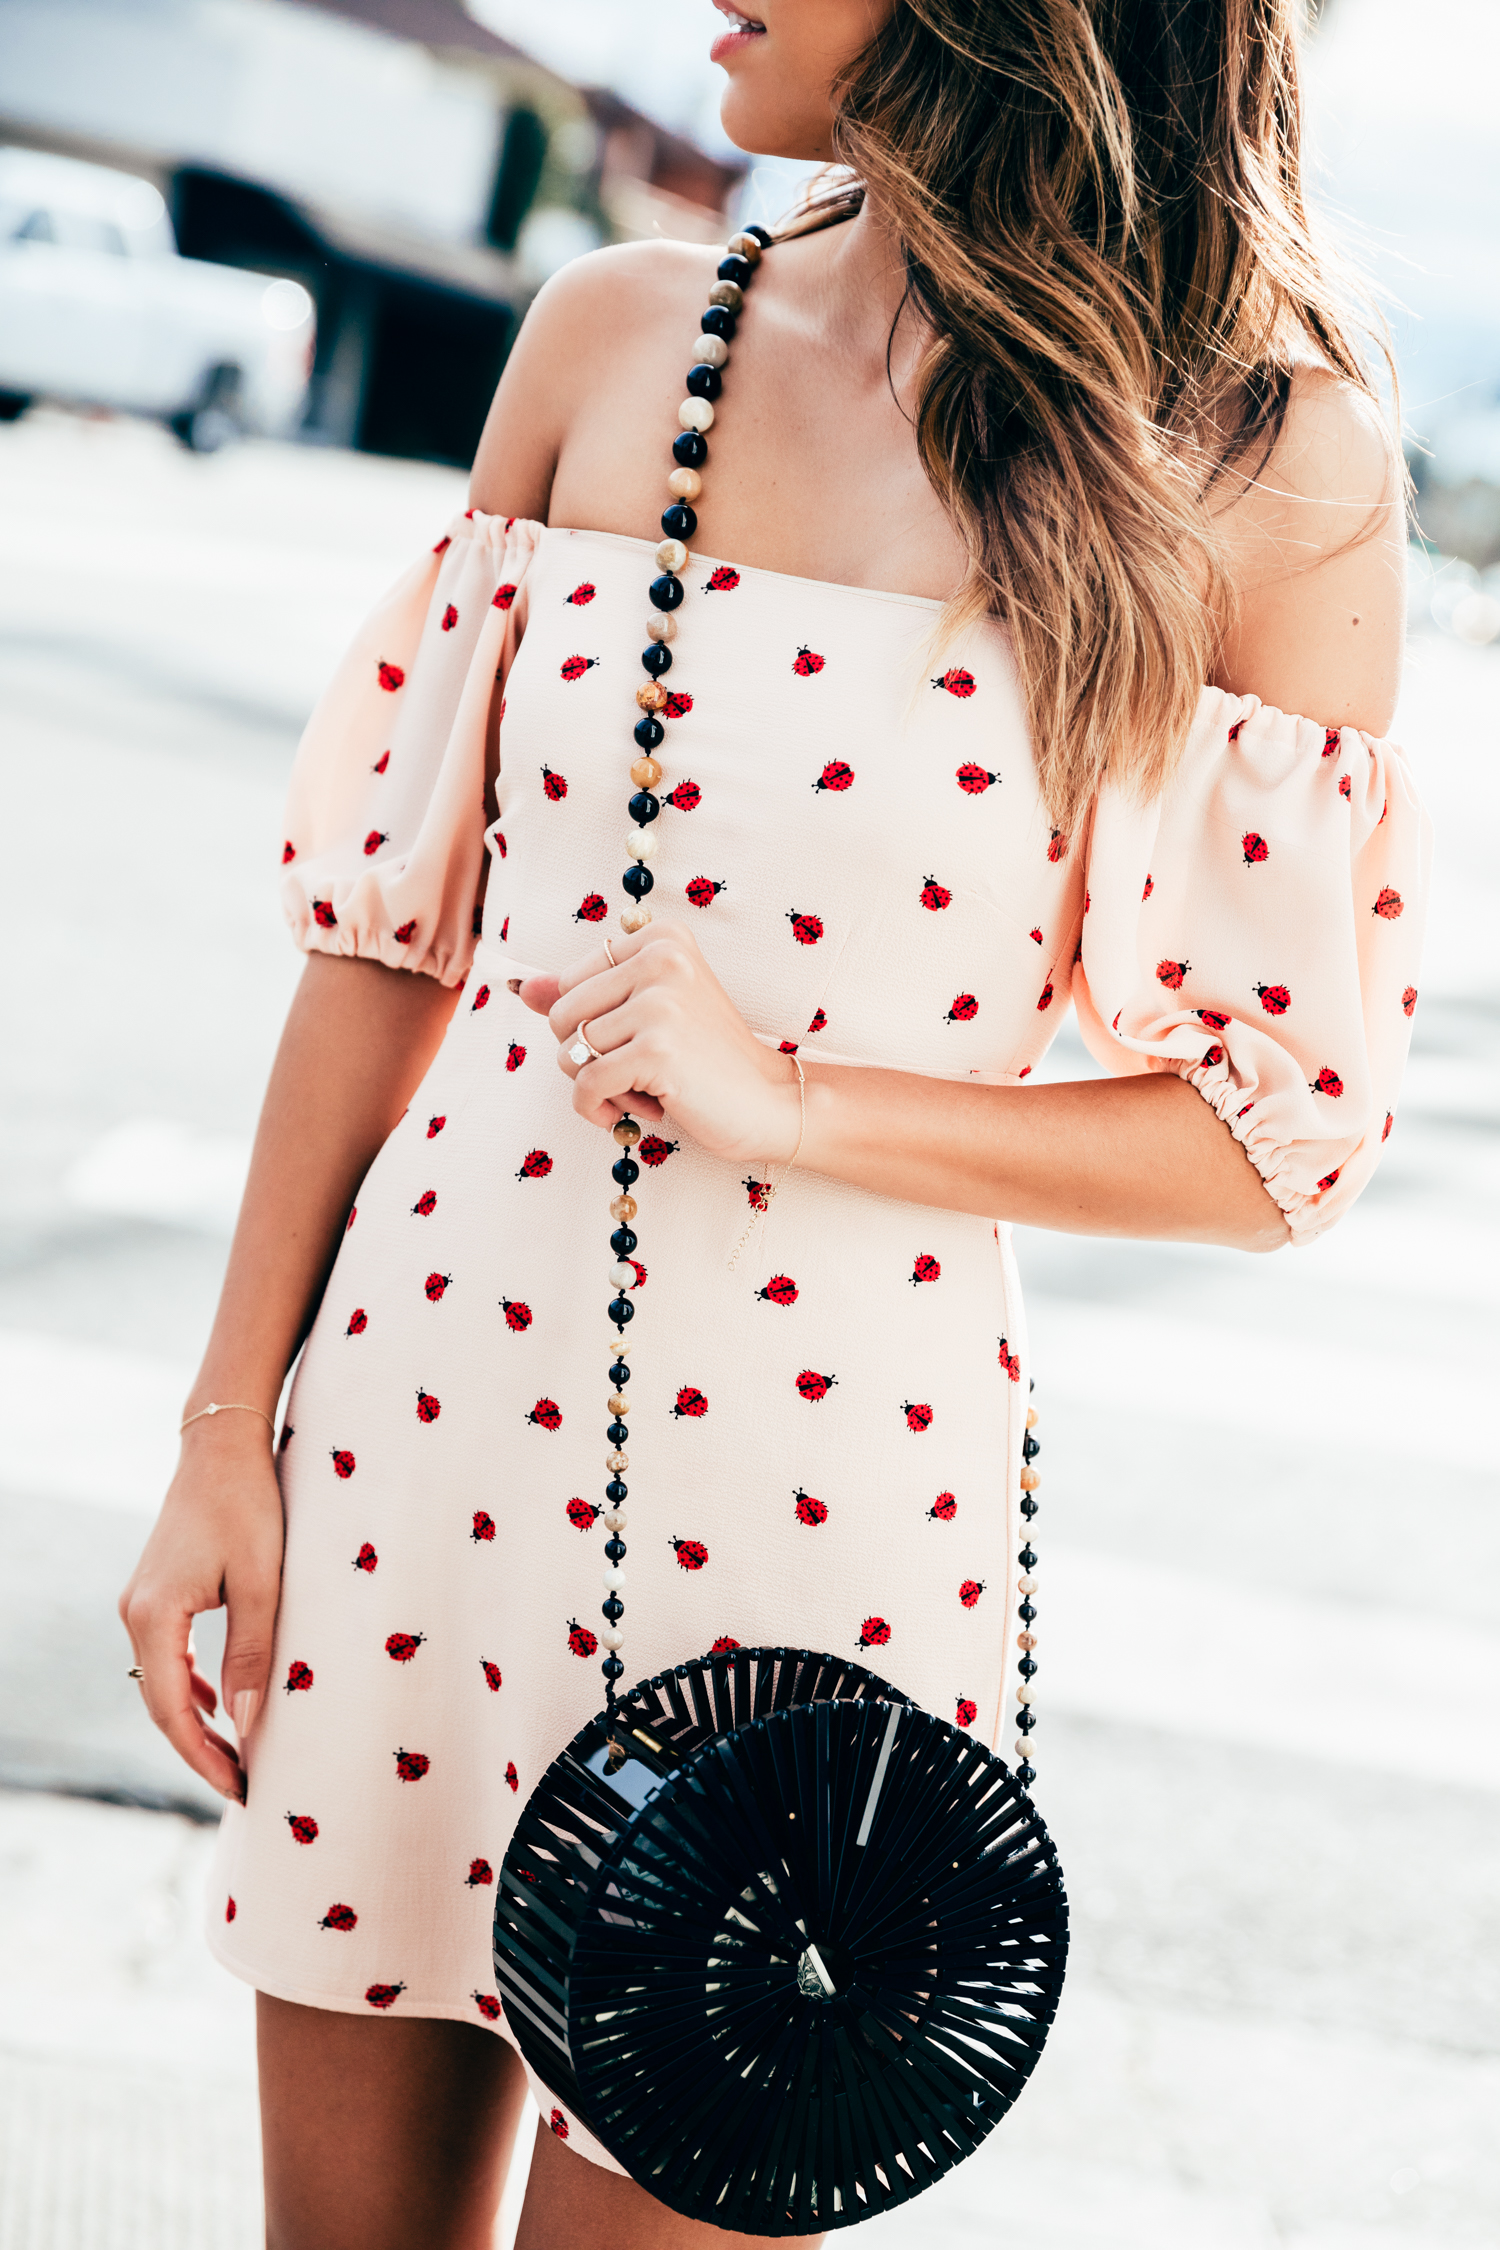 What to wear for summer in LA?